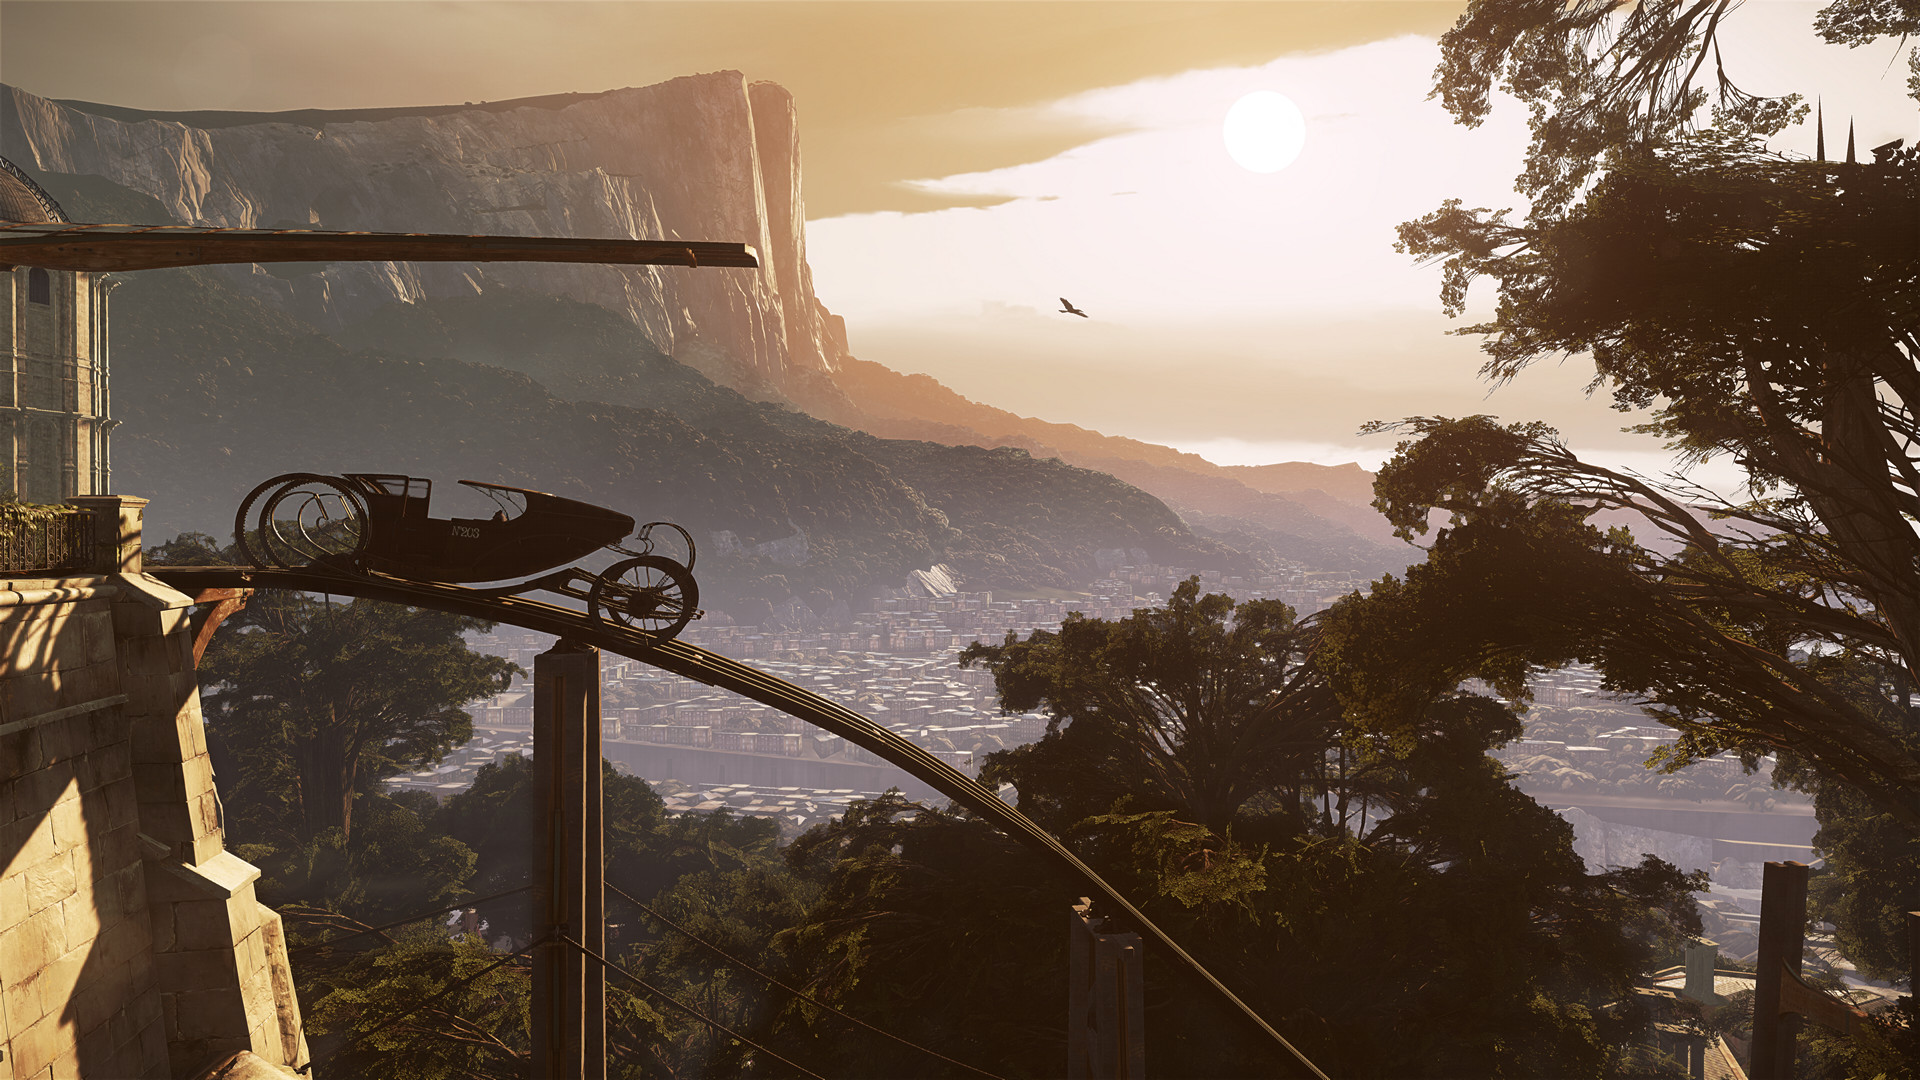 download dishonored 2-steampunks cracked singlelink iso rar full version multi 9 language free for pc